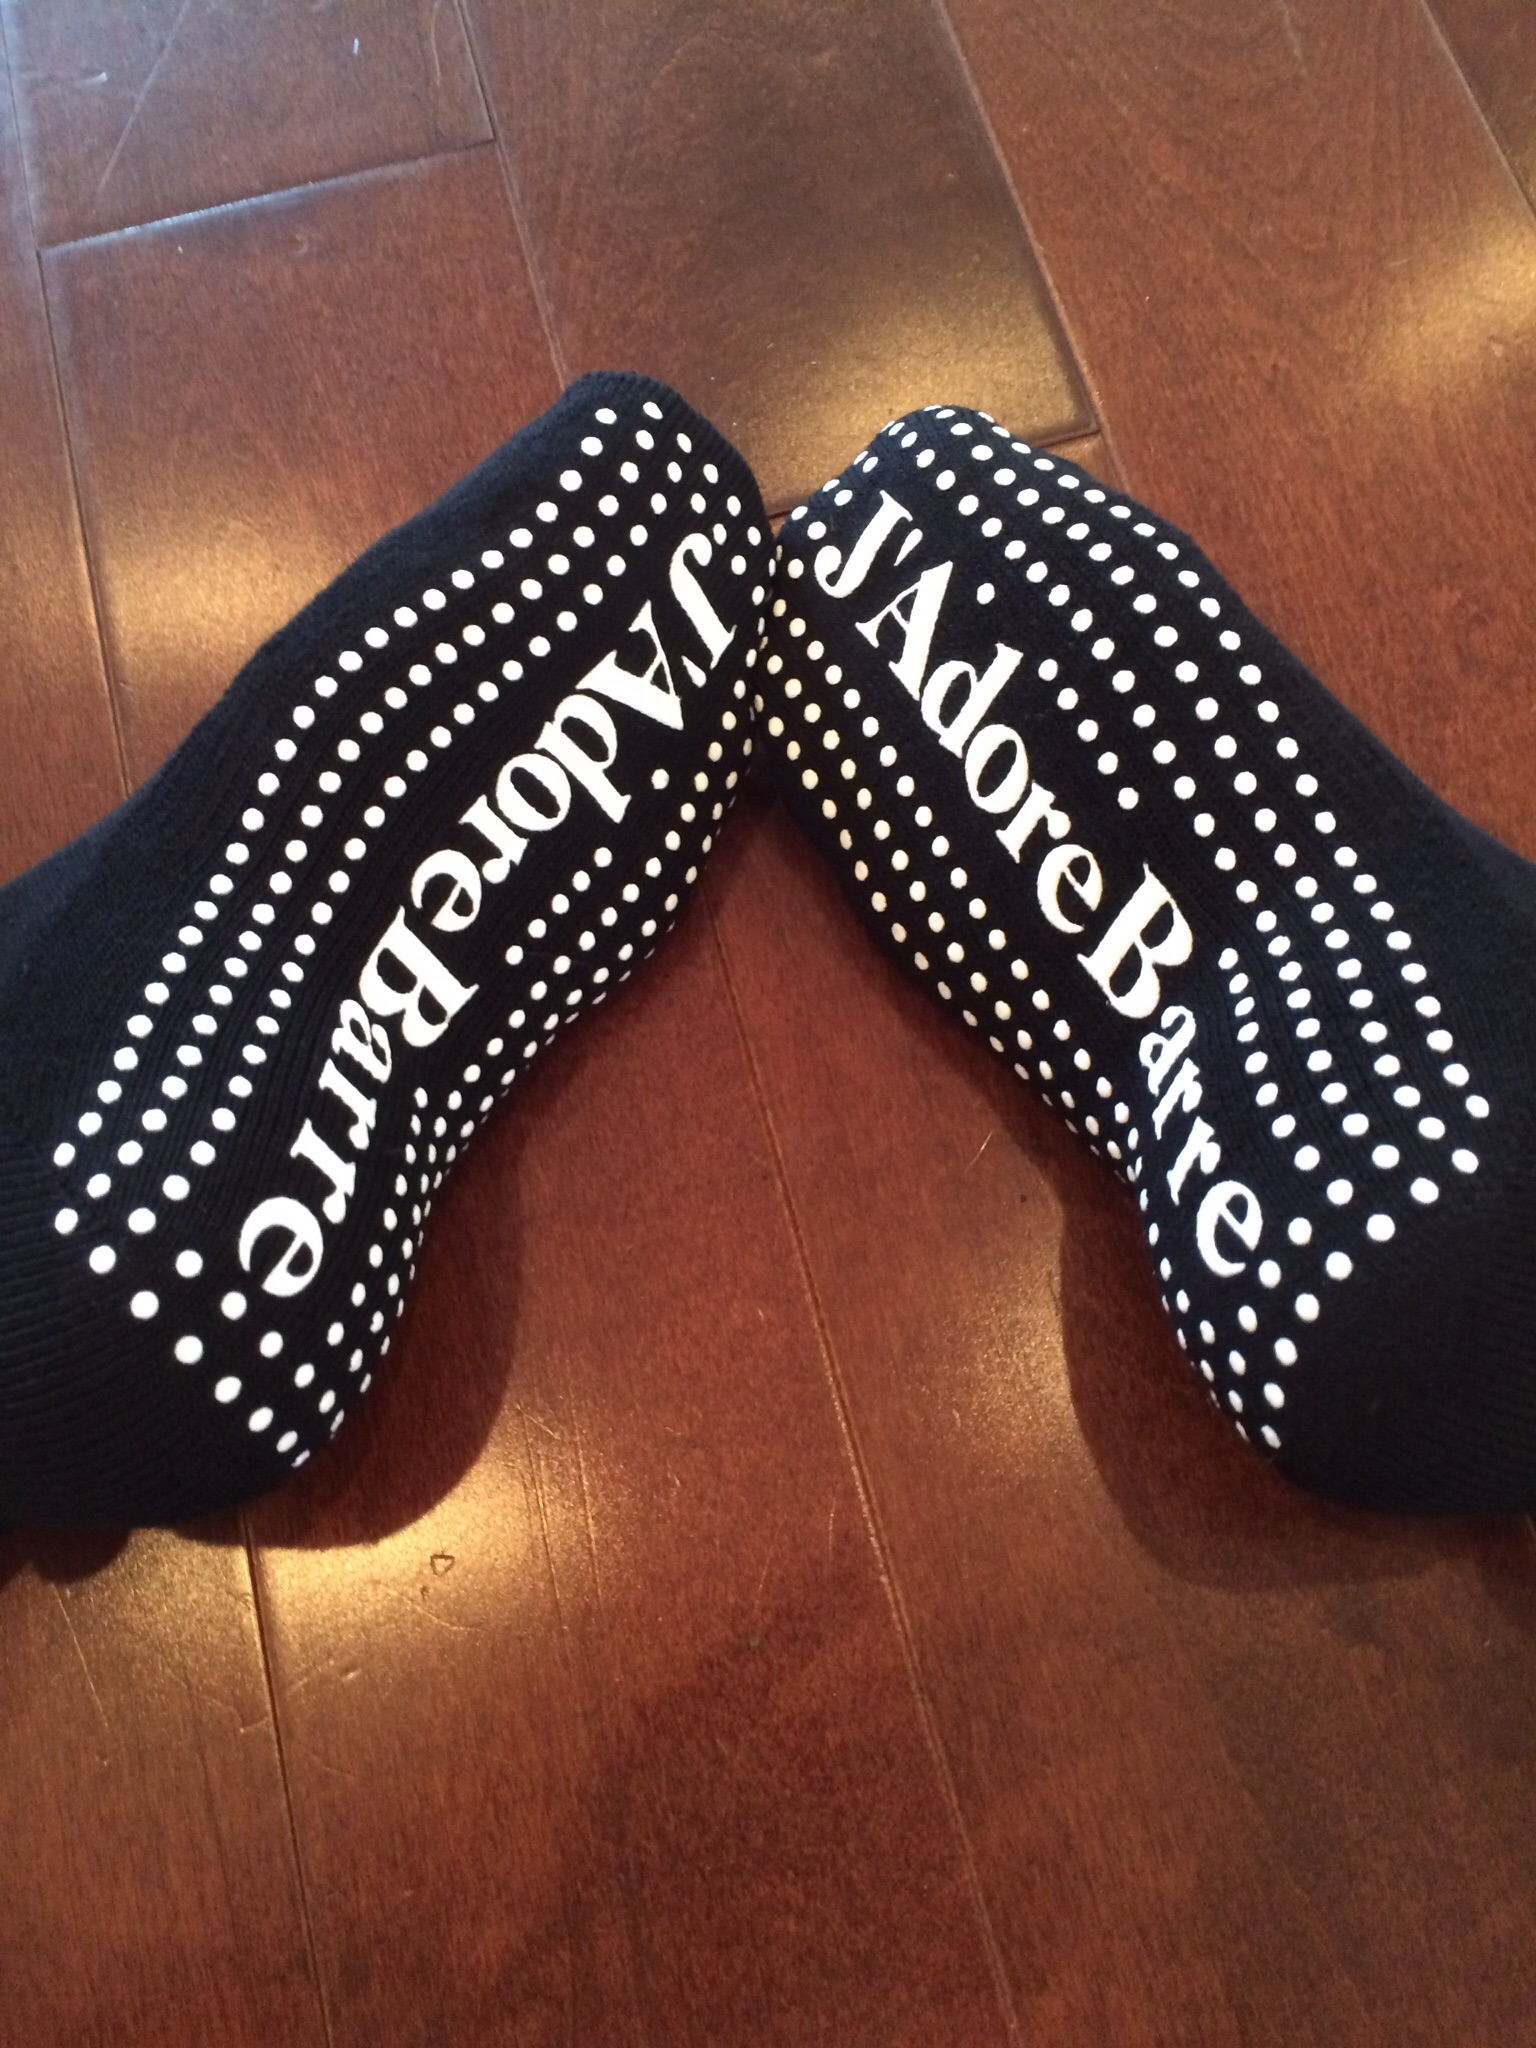 Shout out to my girl, Jennifer for the sock hook up! LOVE.